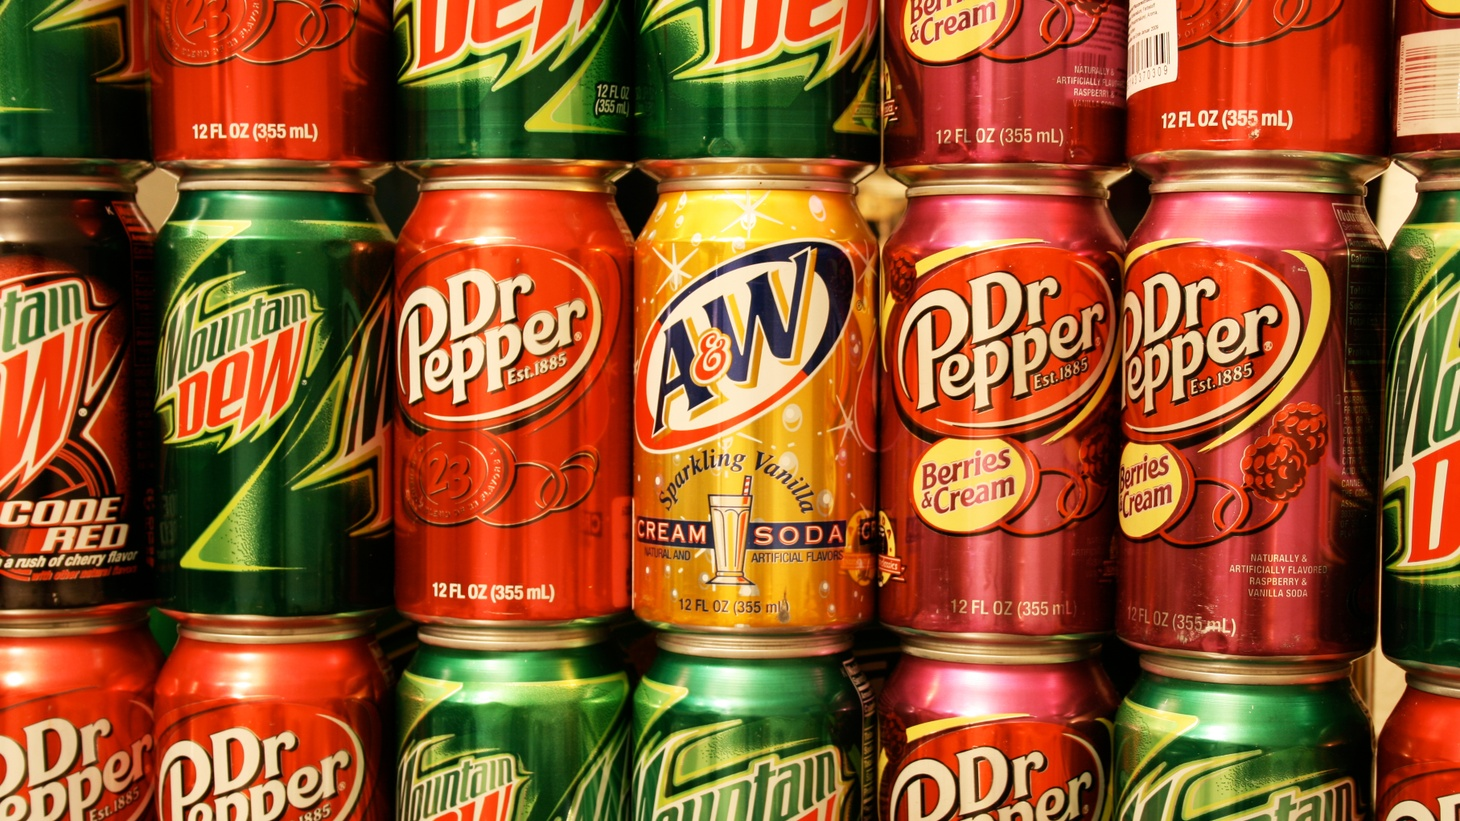 In San Francisco and Berkeley, California, Big Soda has been lumped with Big Tobacco as a target of health-conscious reformers. Next month, voters may tax sugary soft drinks by a few cents per can. To defeat them, Coke, Pepsi and Dr. Pepper will spend more than 15 dollars a vote.